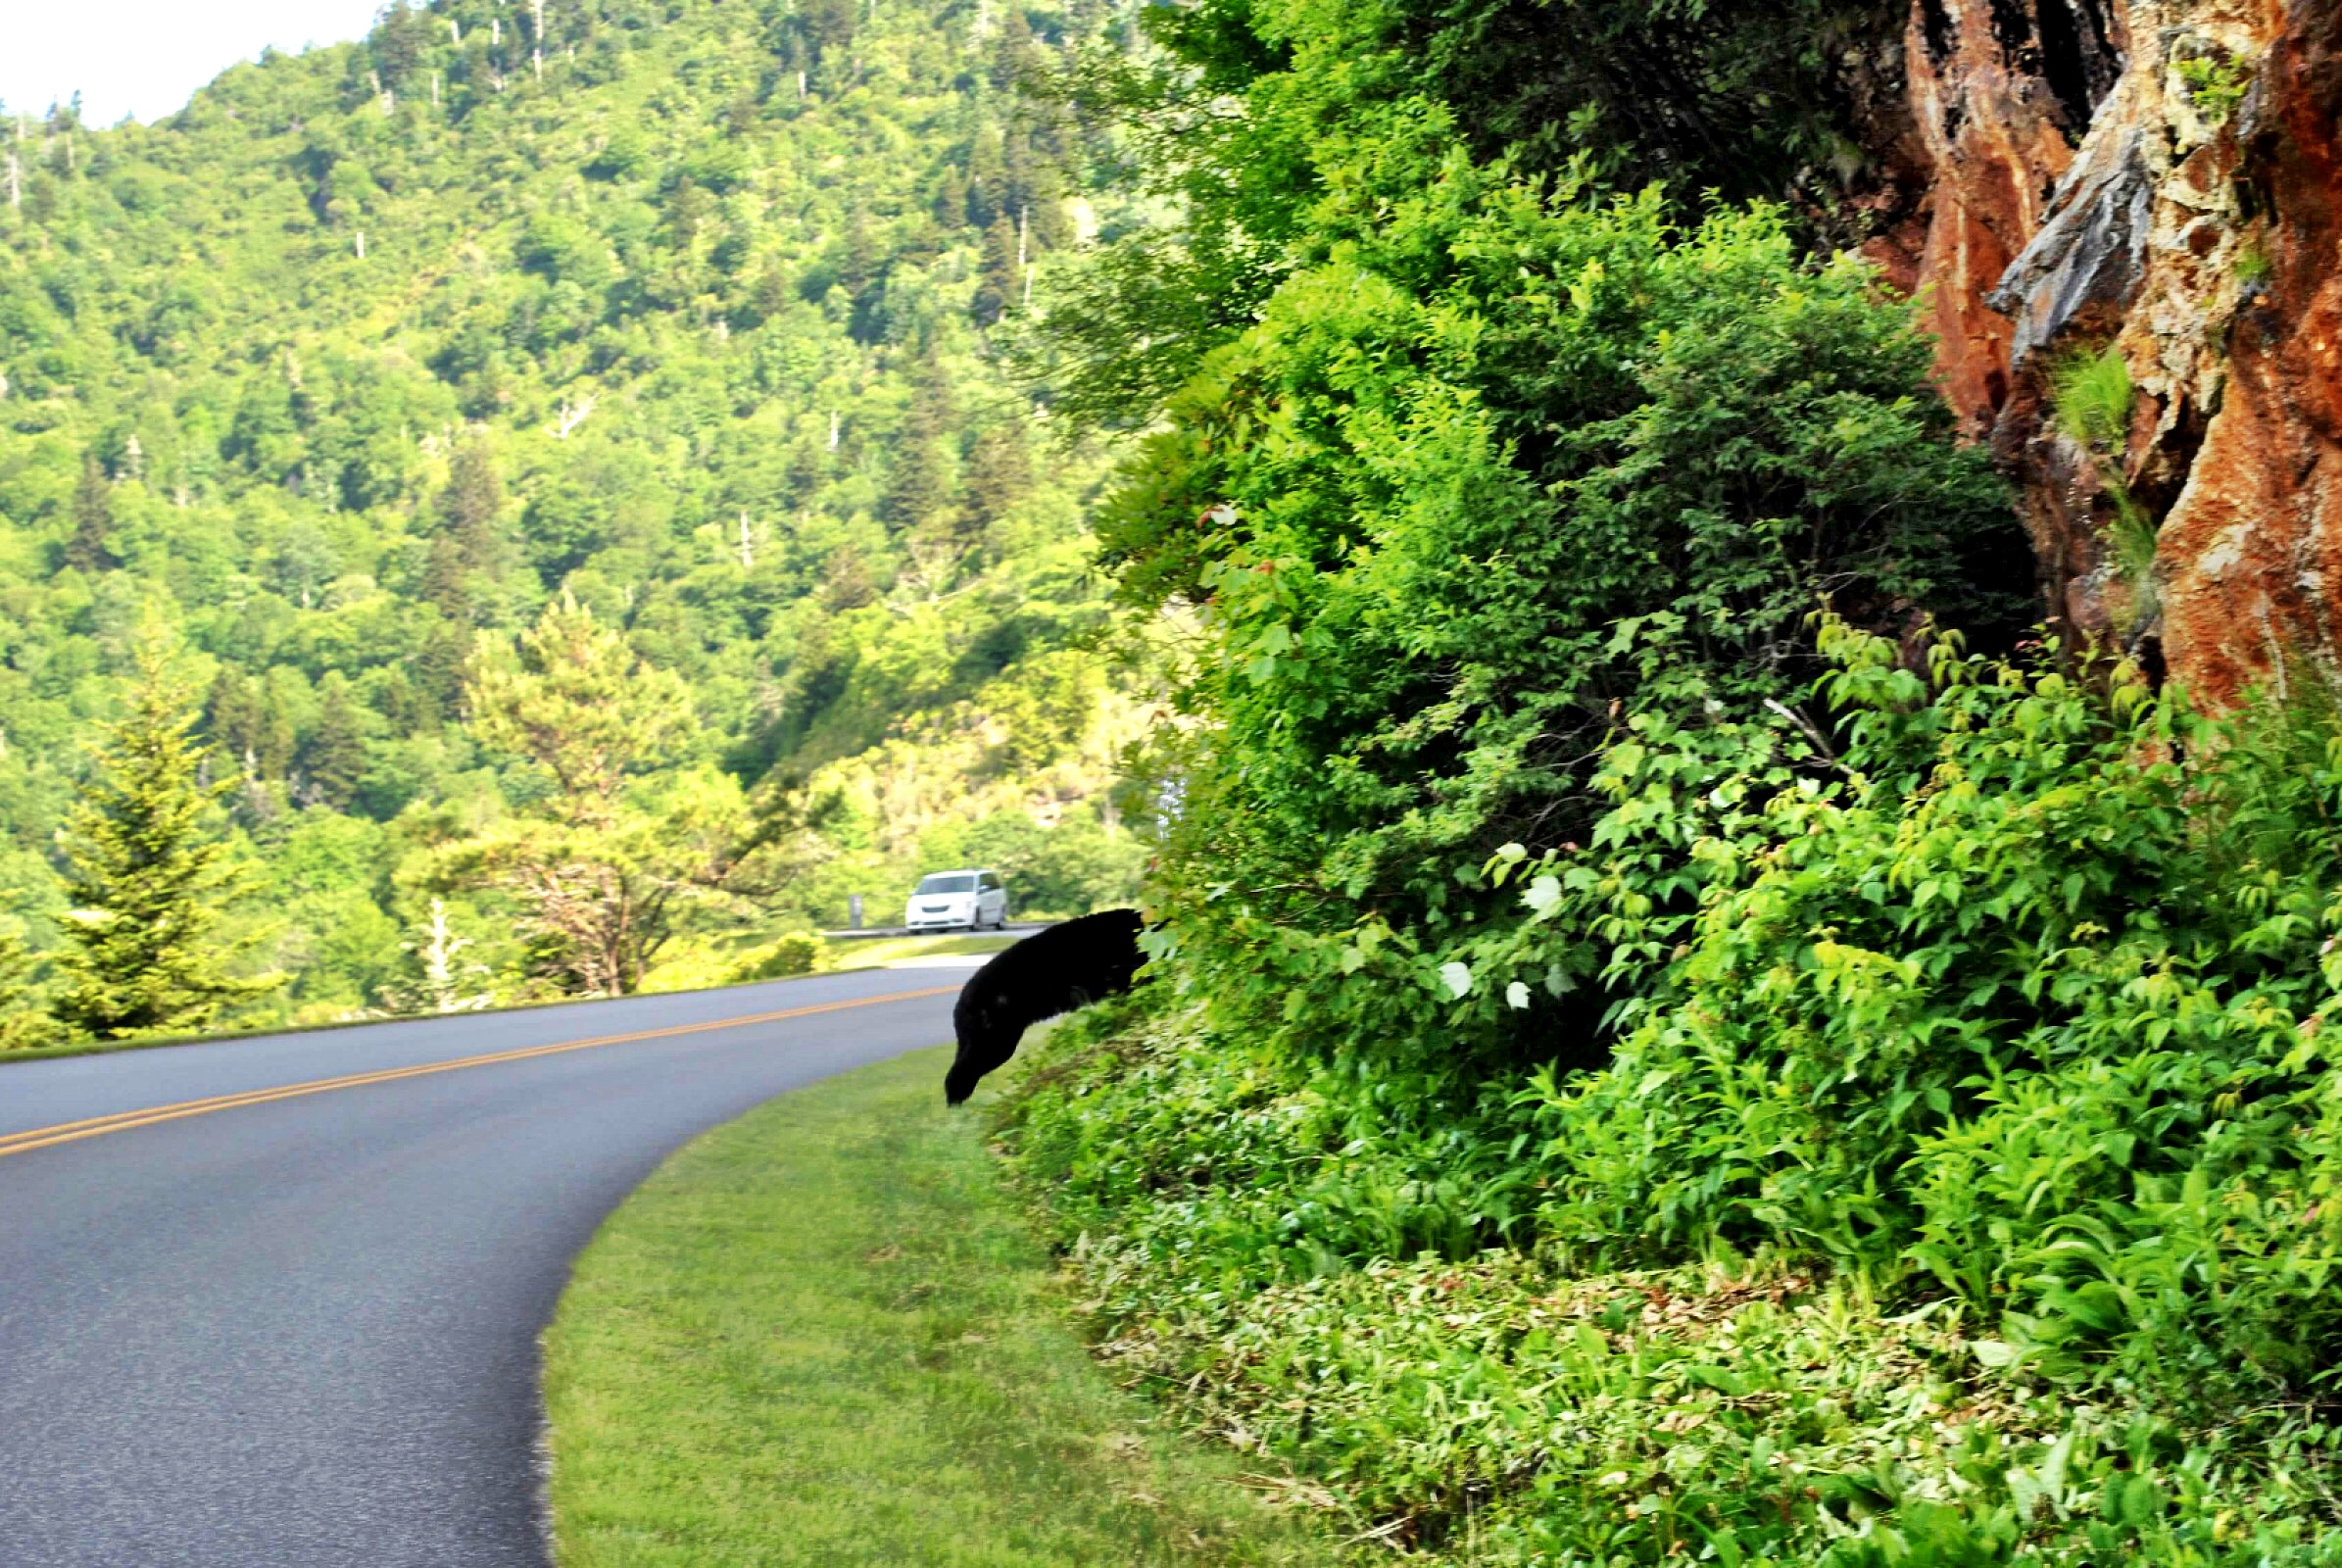 North Carolina - Blue Ridge Parkway - Black Bear